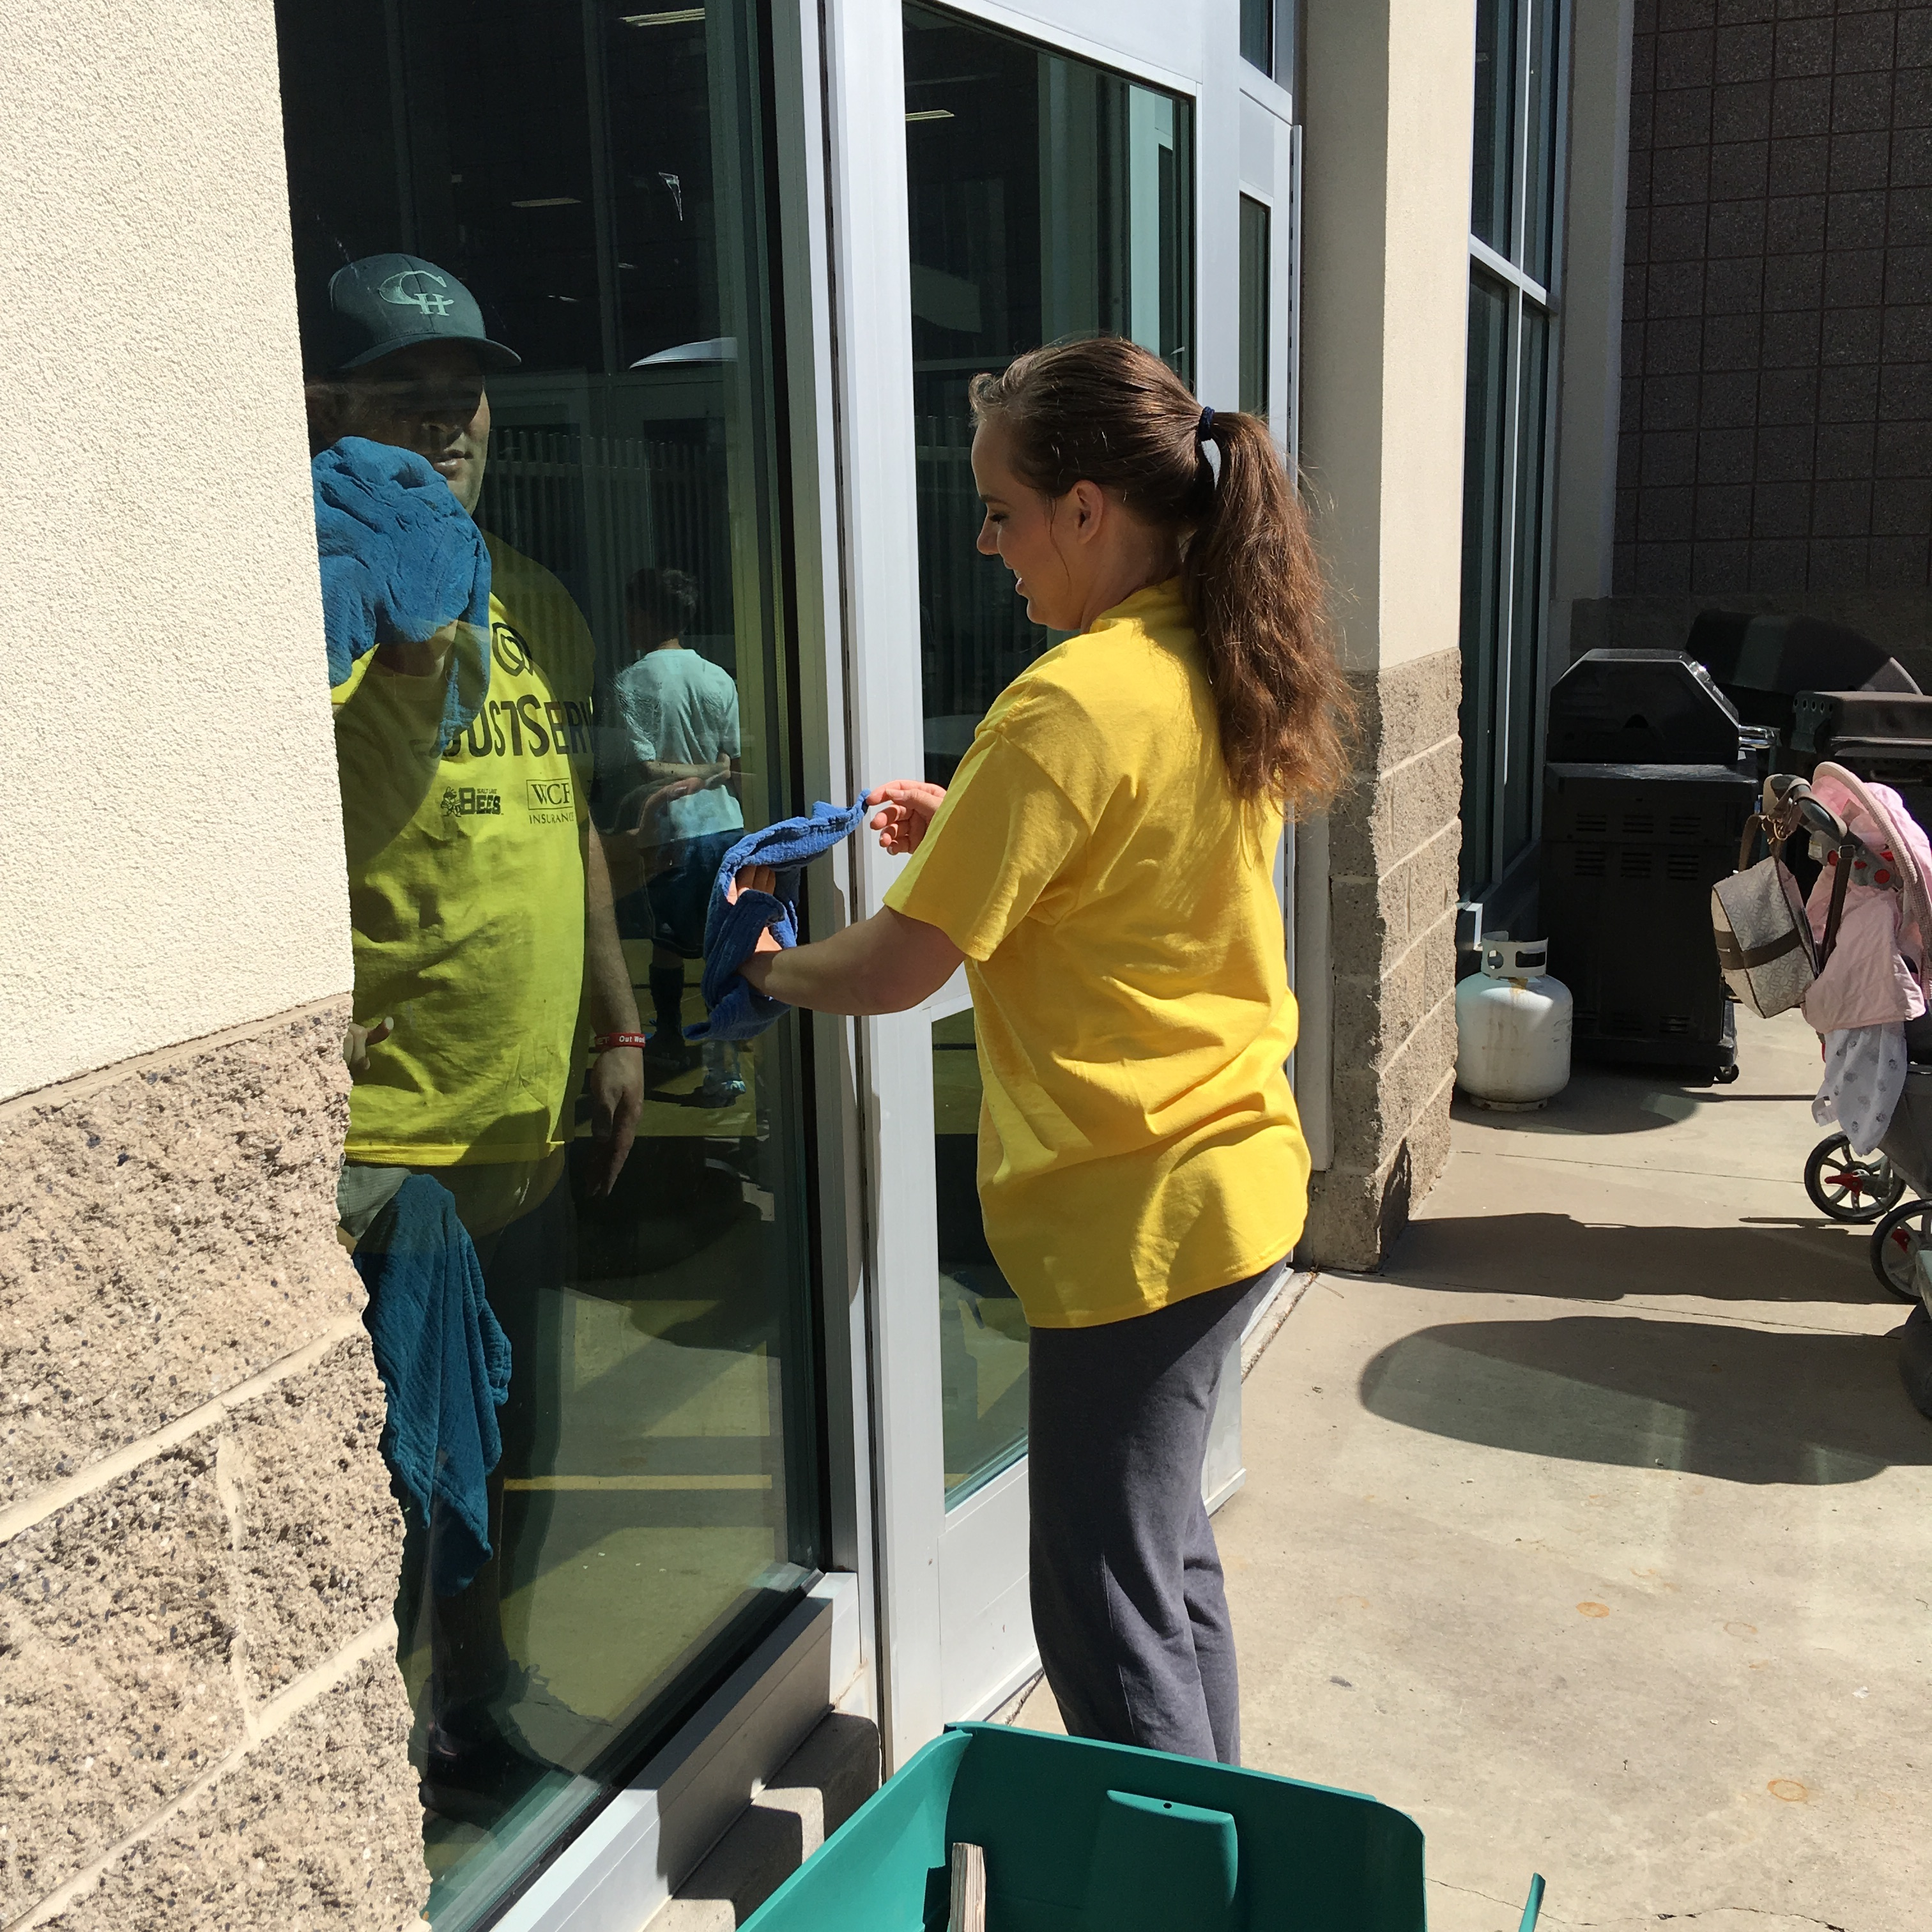 JustServe volunteers clean windows at Centennial Park in West Valley City as part of the Salt Lake Bees/JustServe day of service on April 27.